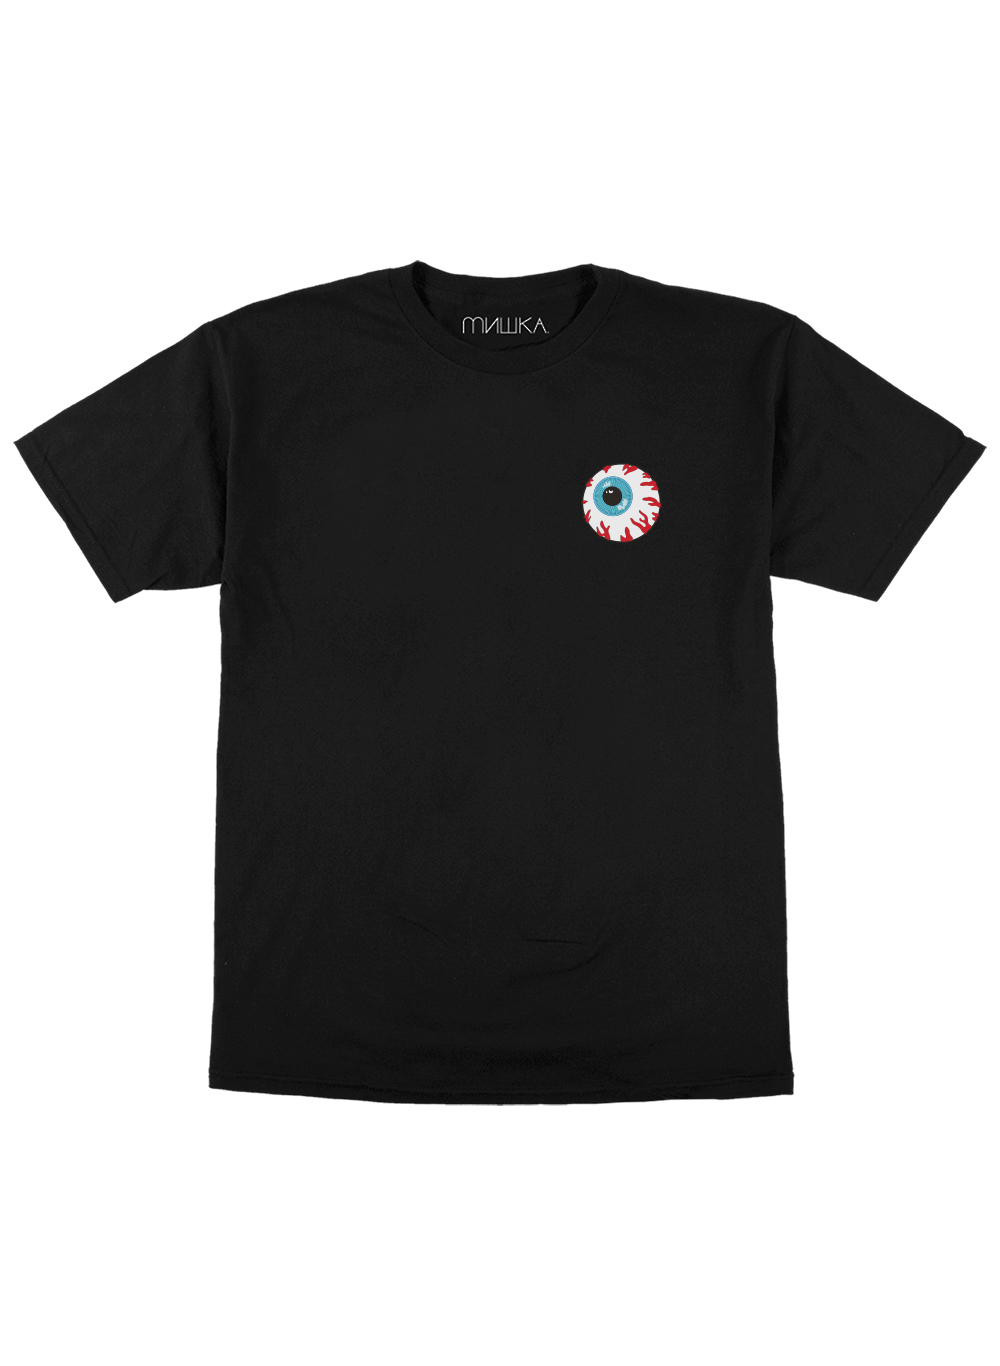 Classic Keep Watch Work Tee